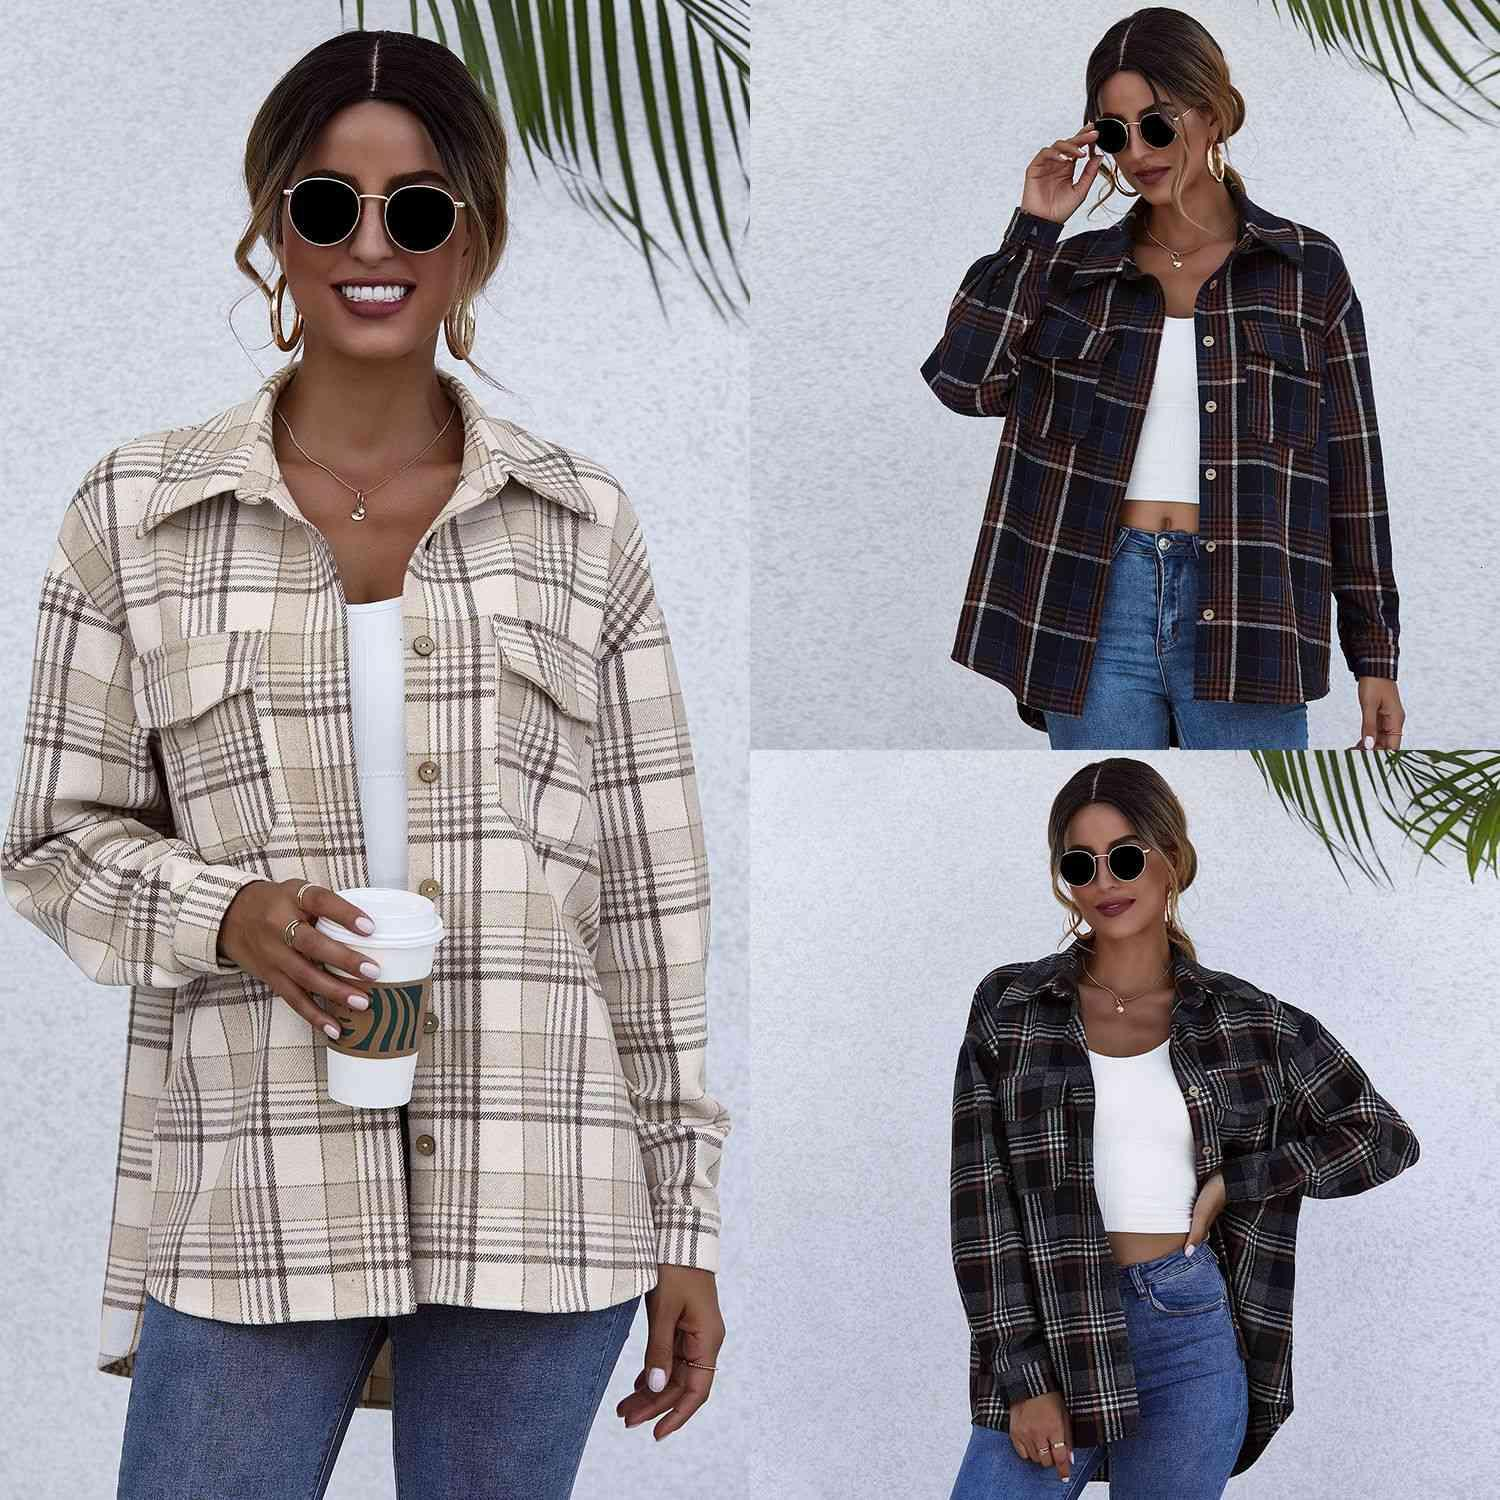 2021 Herbst und Winter Plaid Harajuku Strickjacke Single Breasted Long Sleeve Cotton Revers Shirt